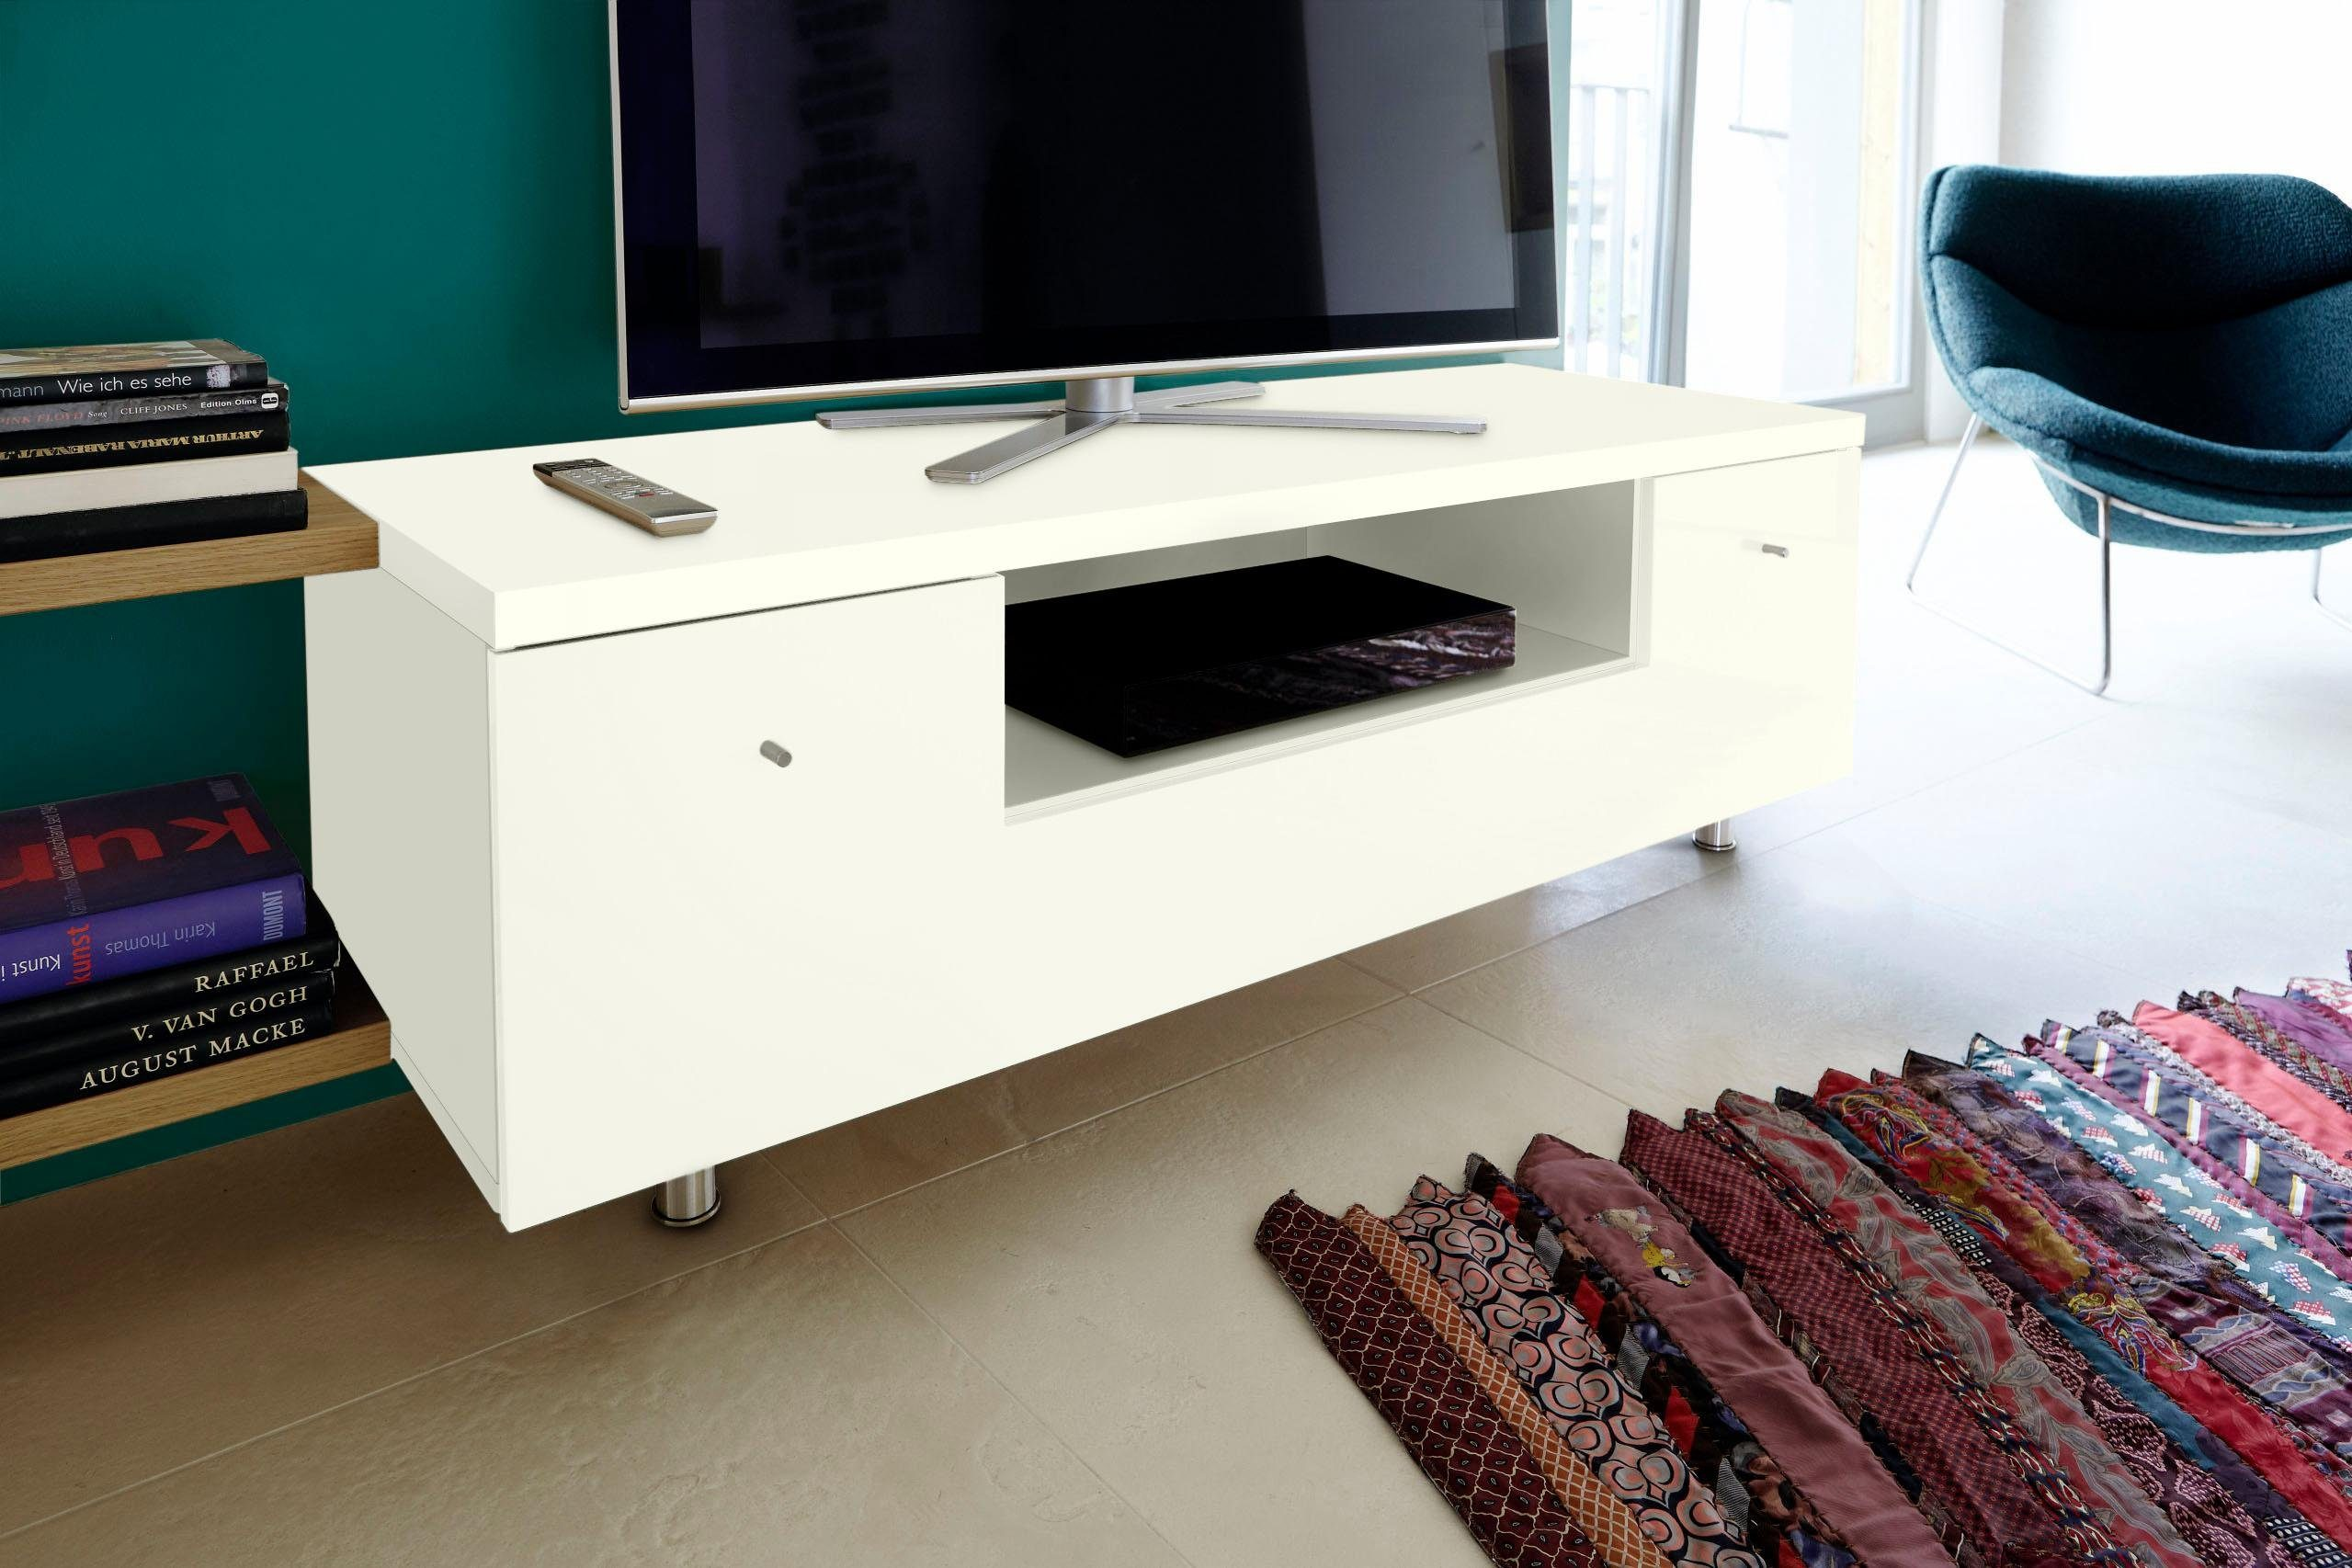 Tv Schrank Lowboard Now! By Hülsta Tv-lowboard »now! Time«, Breite 140 Cm